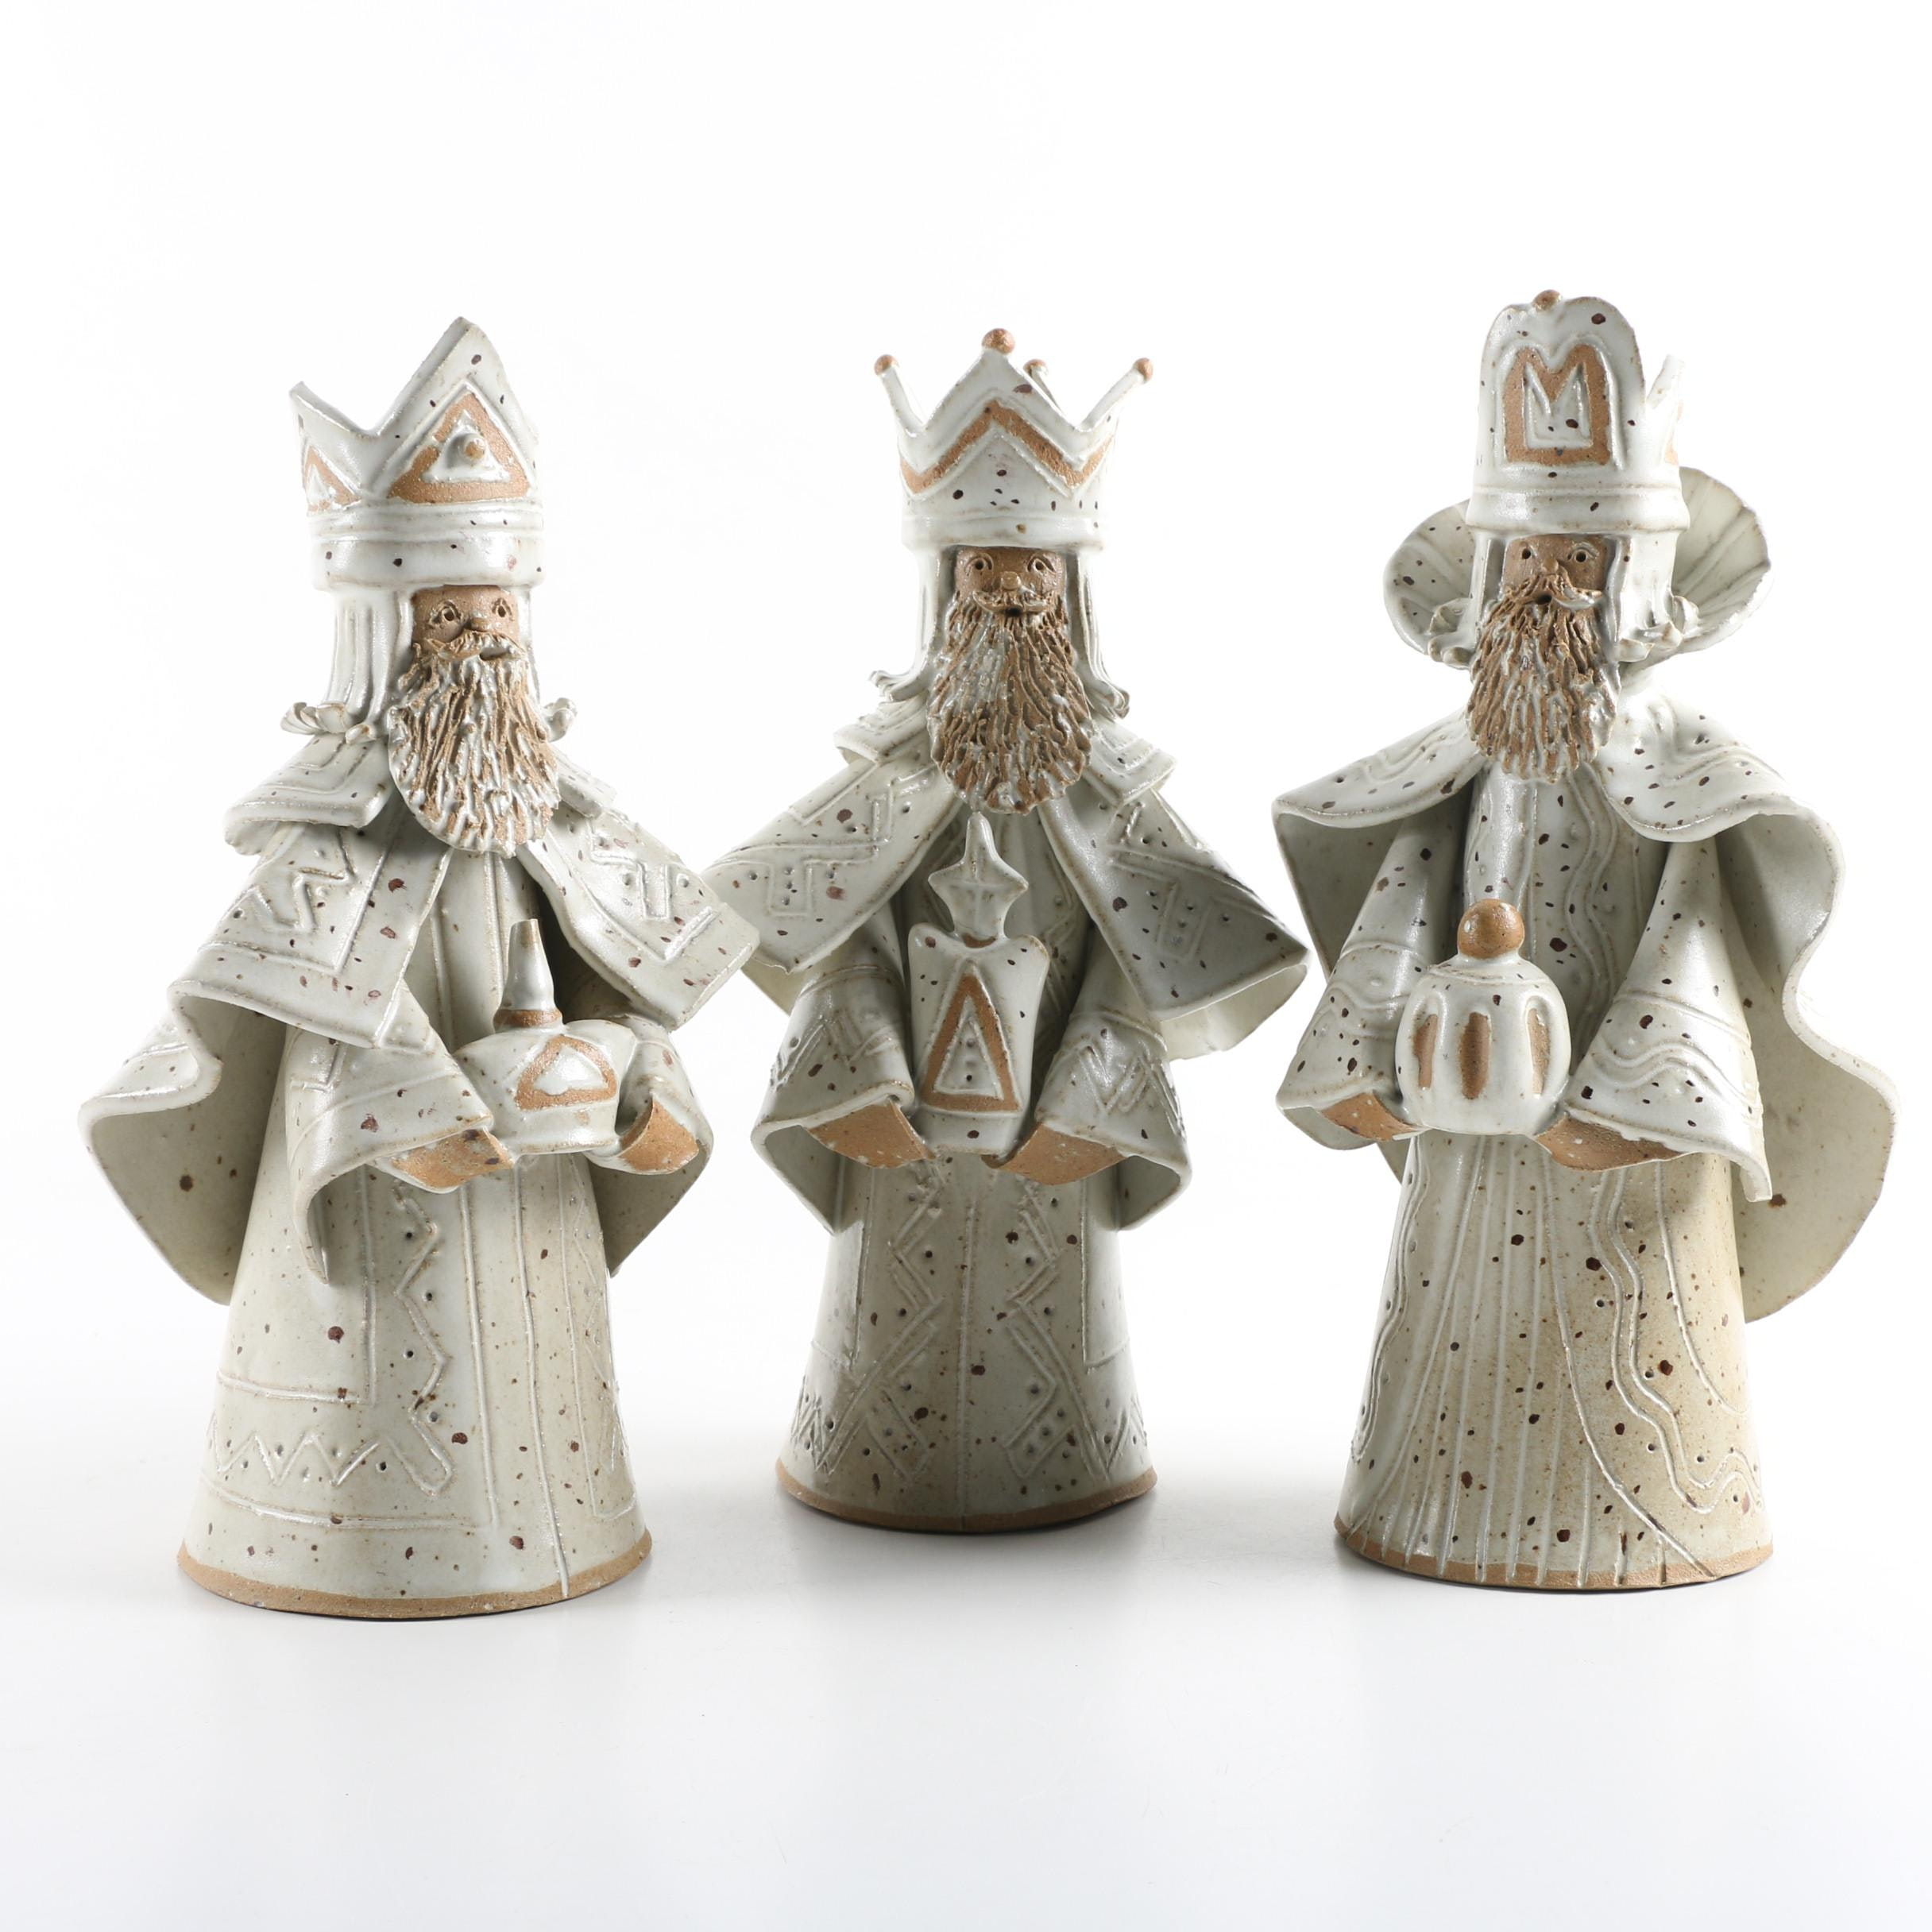 Three Kings Ceramic Figurines by Olly